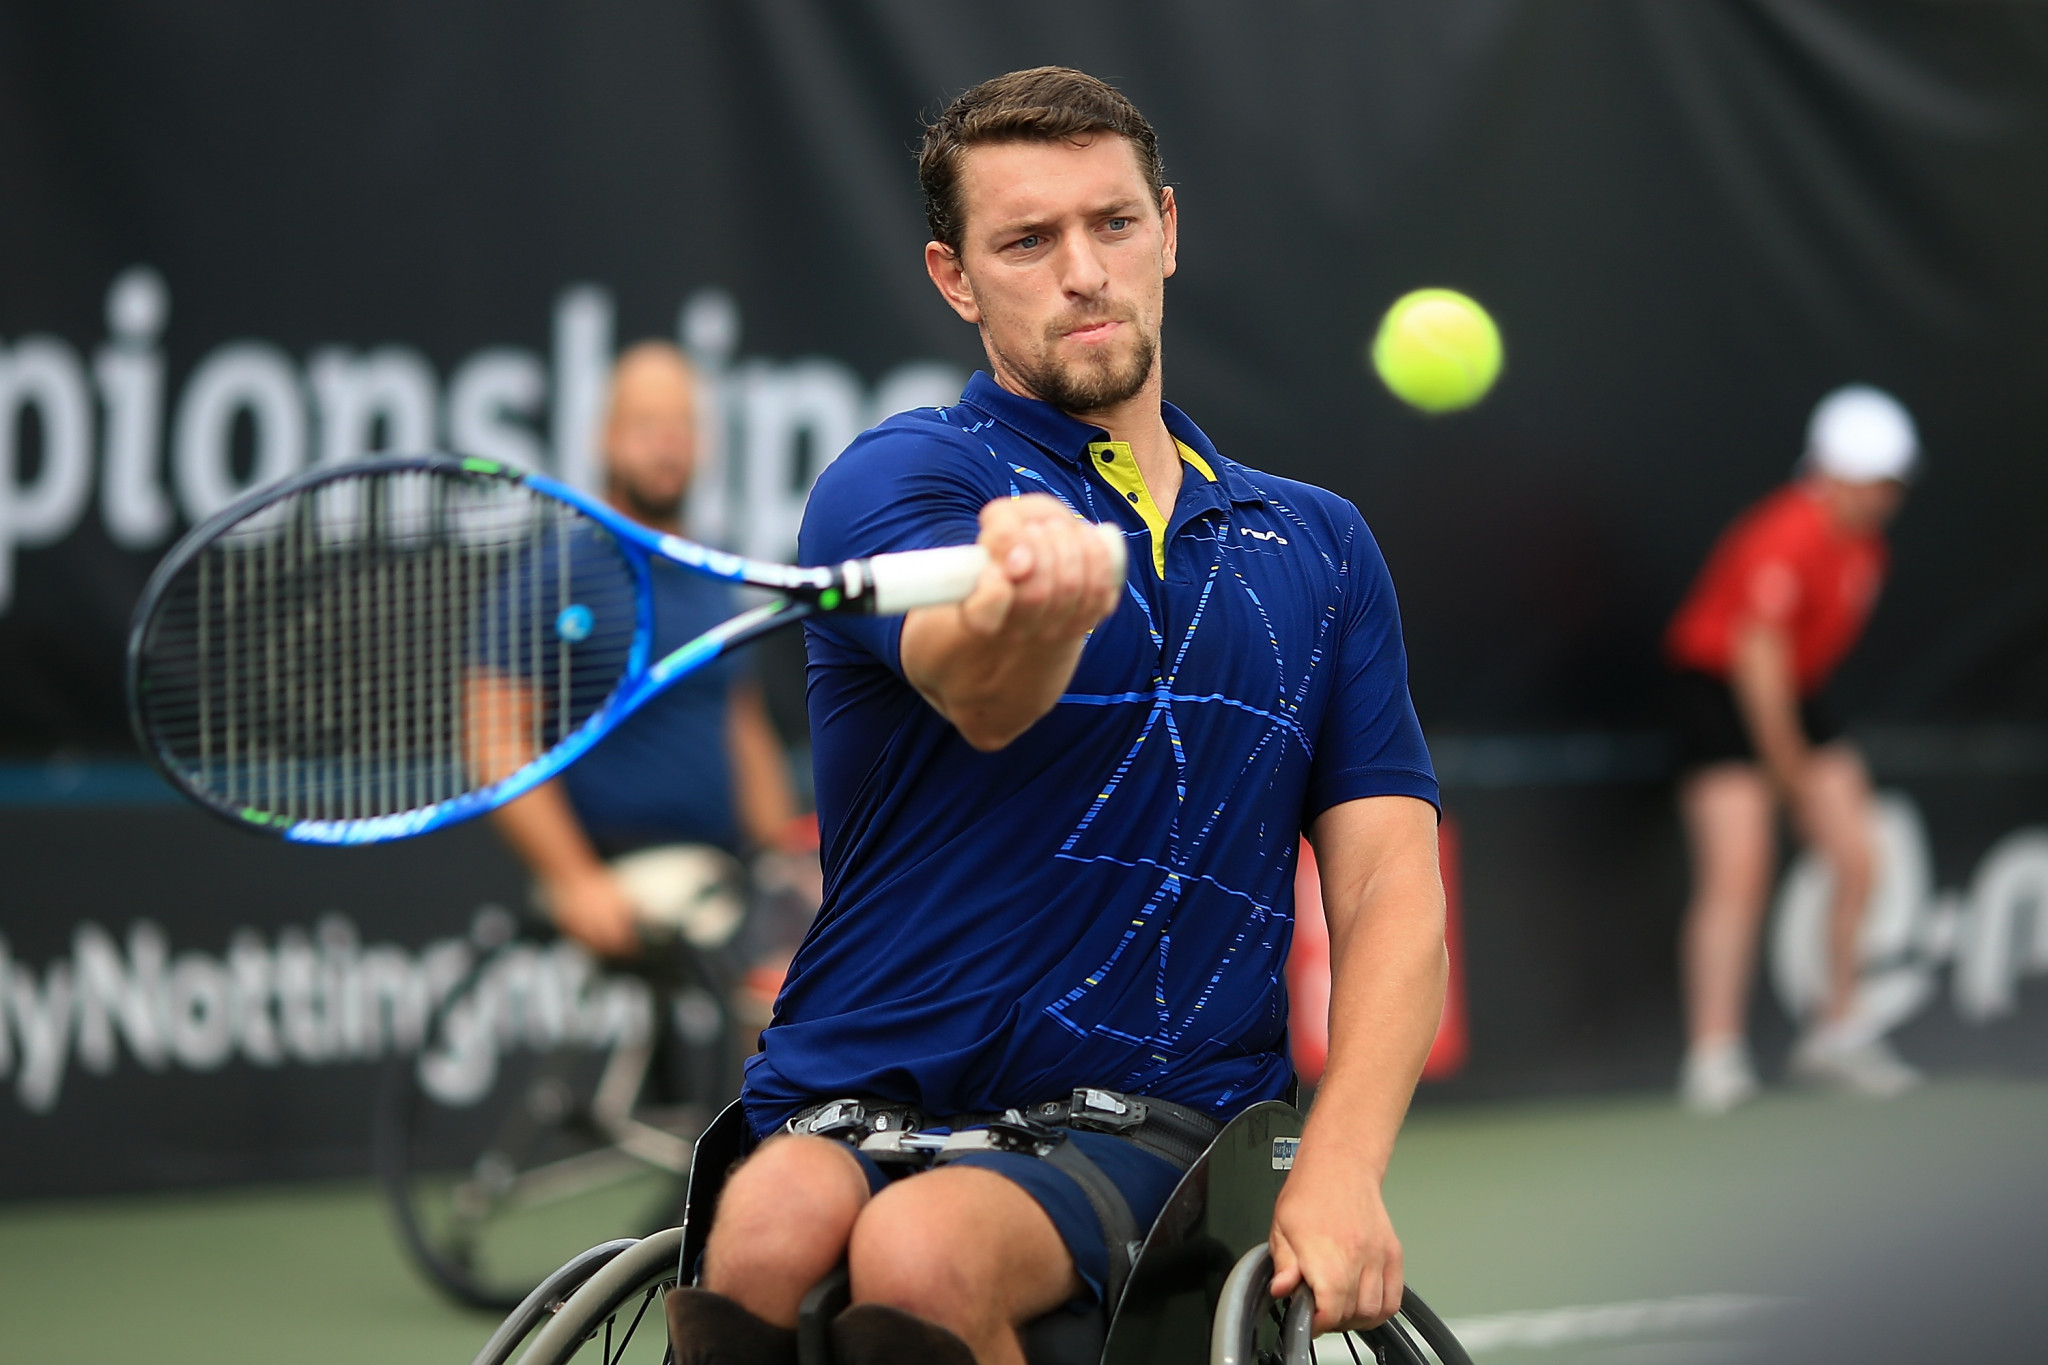 Houdet title defence ended at US Open Wheelchair Championships